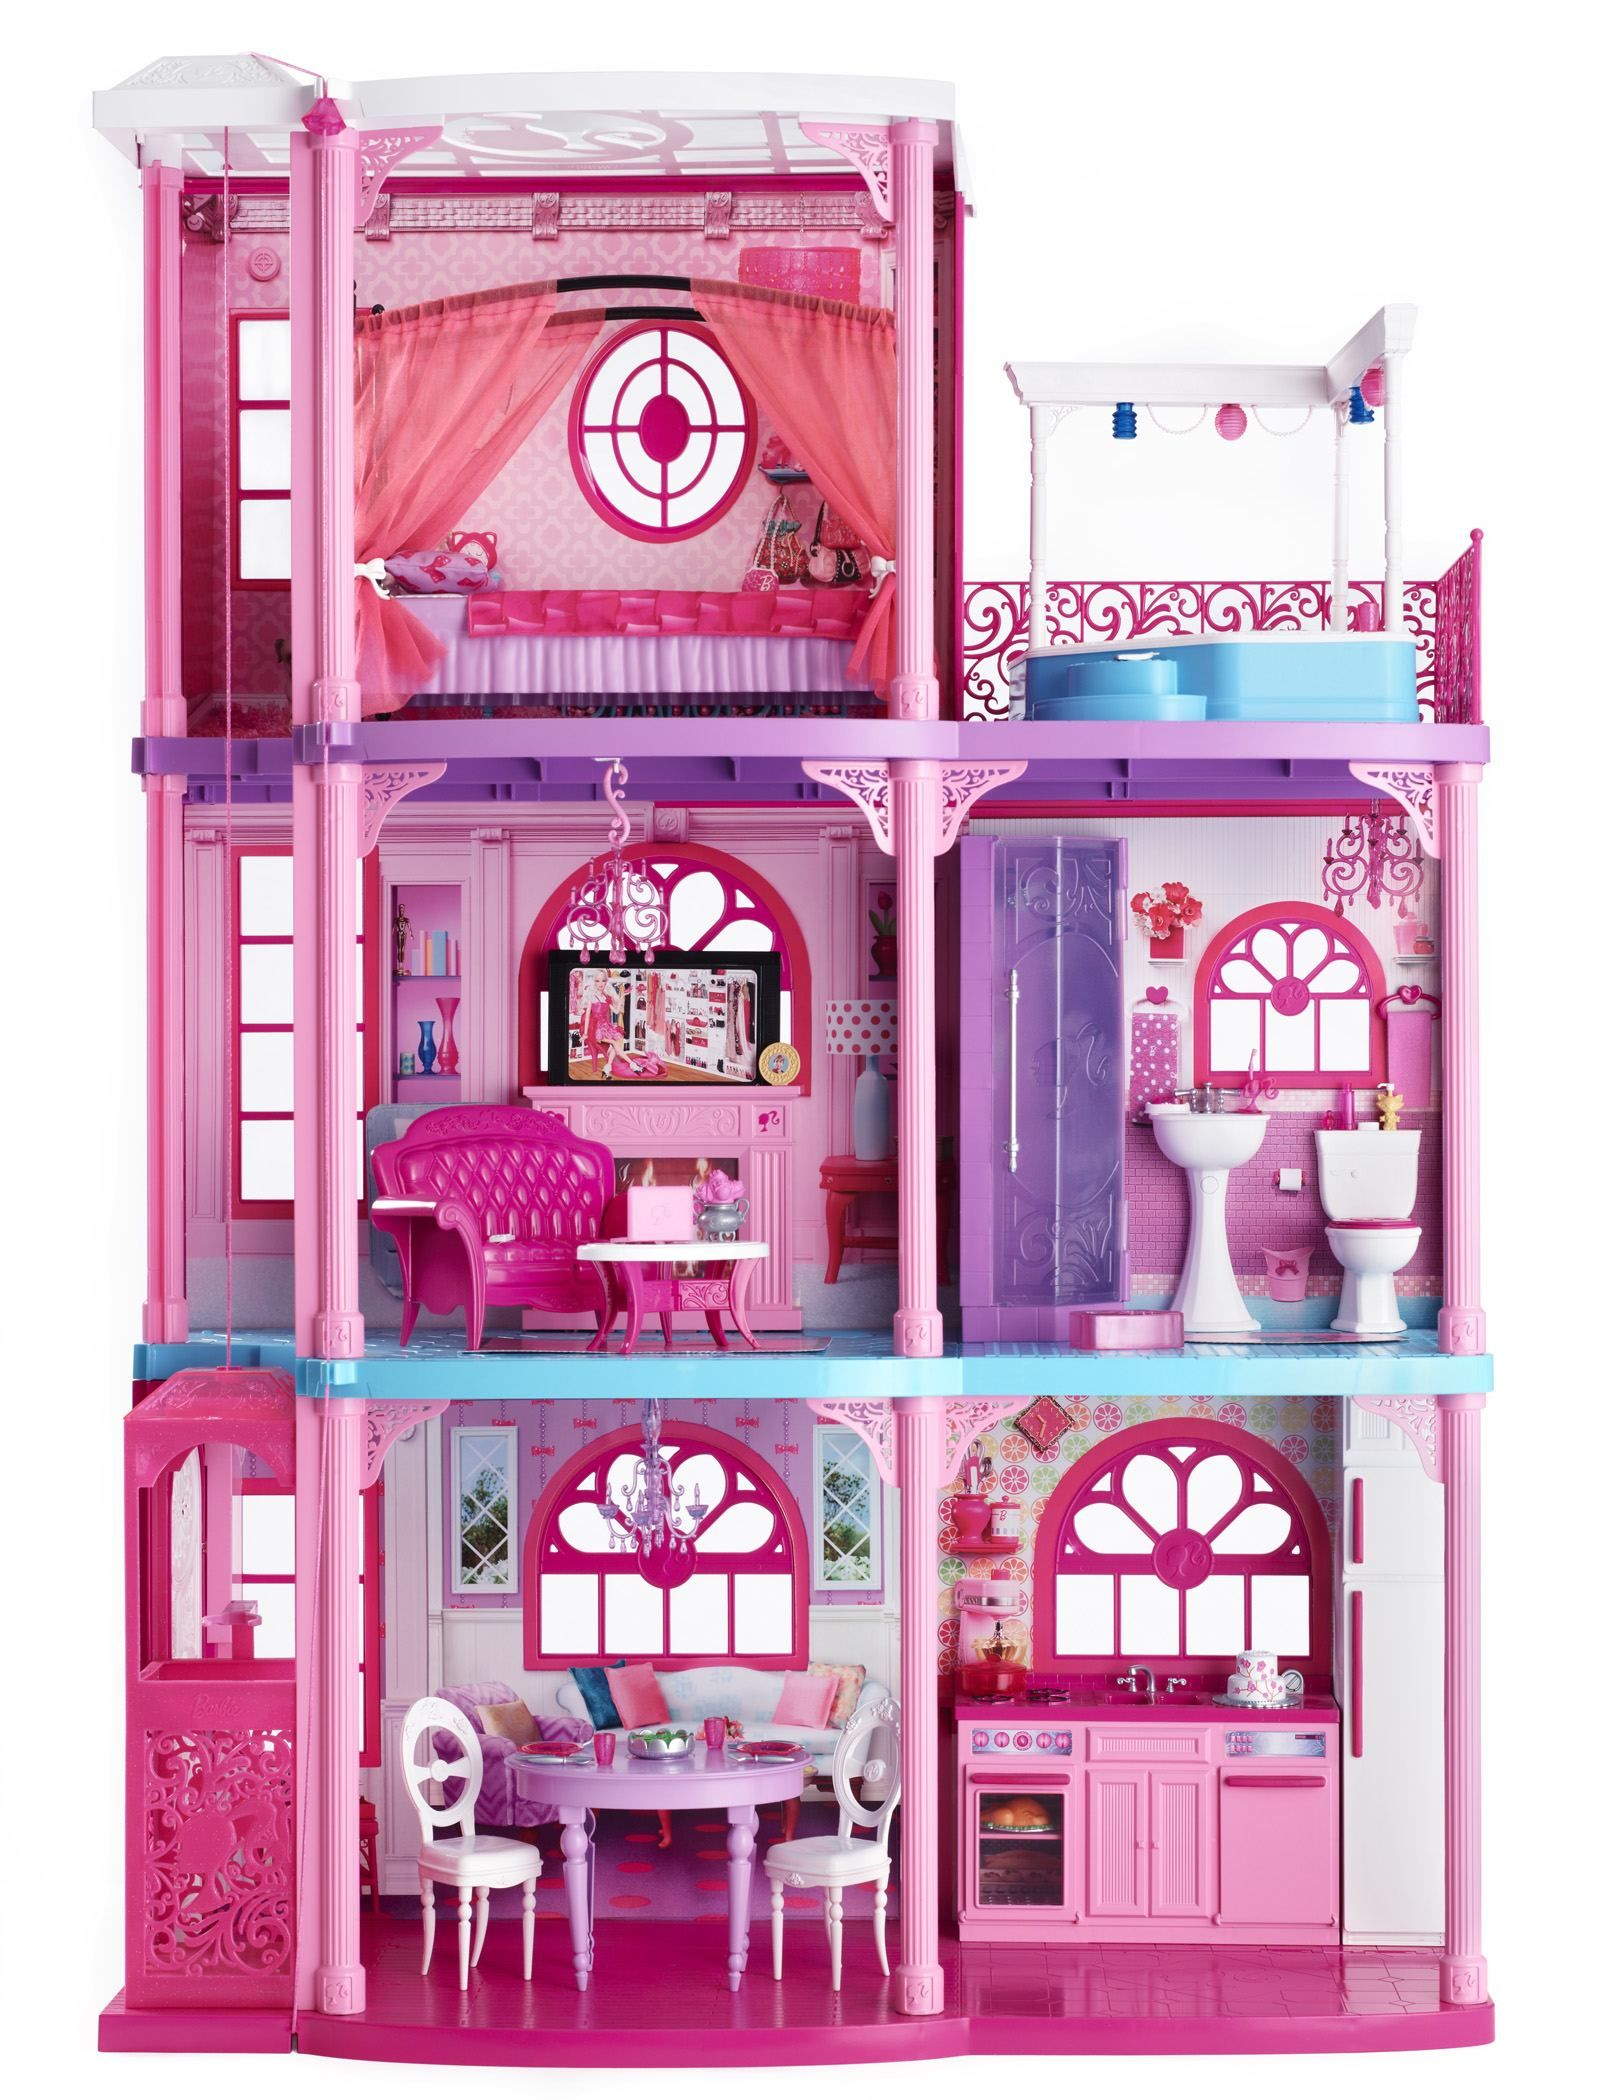 Barbie Dreamhouse 2017 Continuing With Her Love Of Pink S Includes Two Sitting Entertaining Room A Kitchen Bathroom Bedroom And An